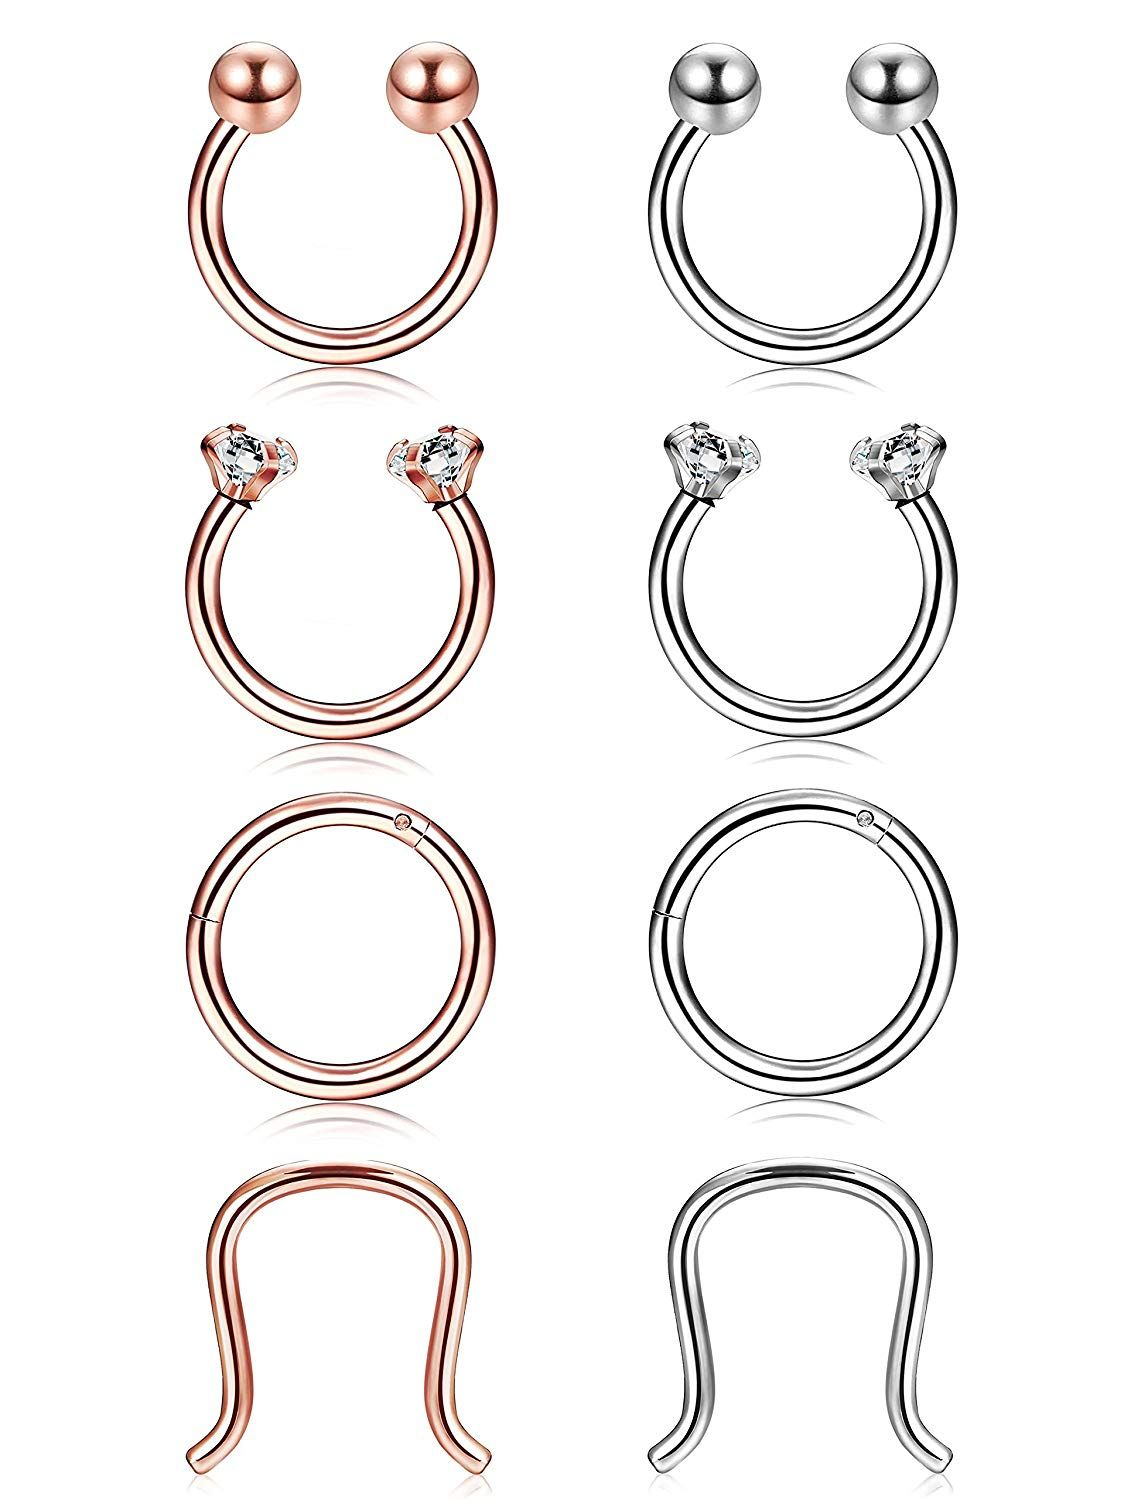 Udalyn 8 Pcs 16g Hoop Nose Ring Surgical Steel Septum Clicker Horseshoe Lip Ring Piercing Jewelry Lip Piercing Ring Nose Rings Hoop Piercing Jewelry